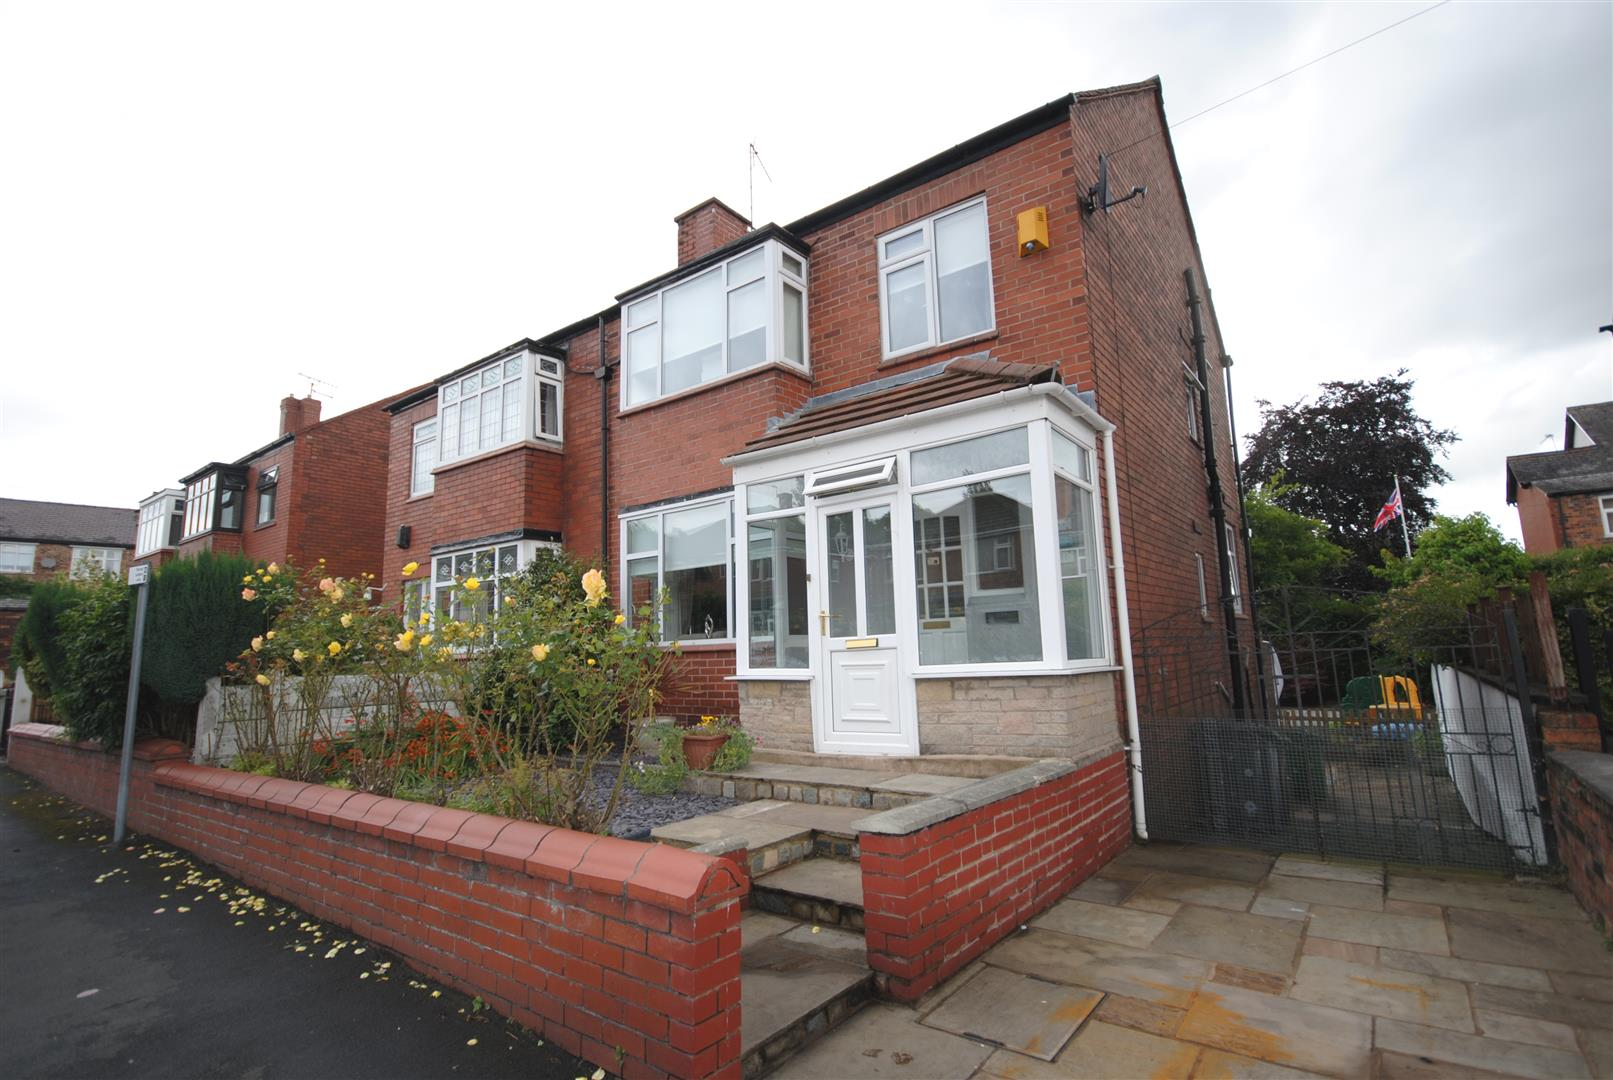 3 Bedrooms House for sale in Dicconson Street, Wigan